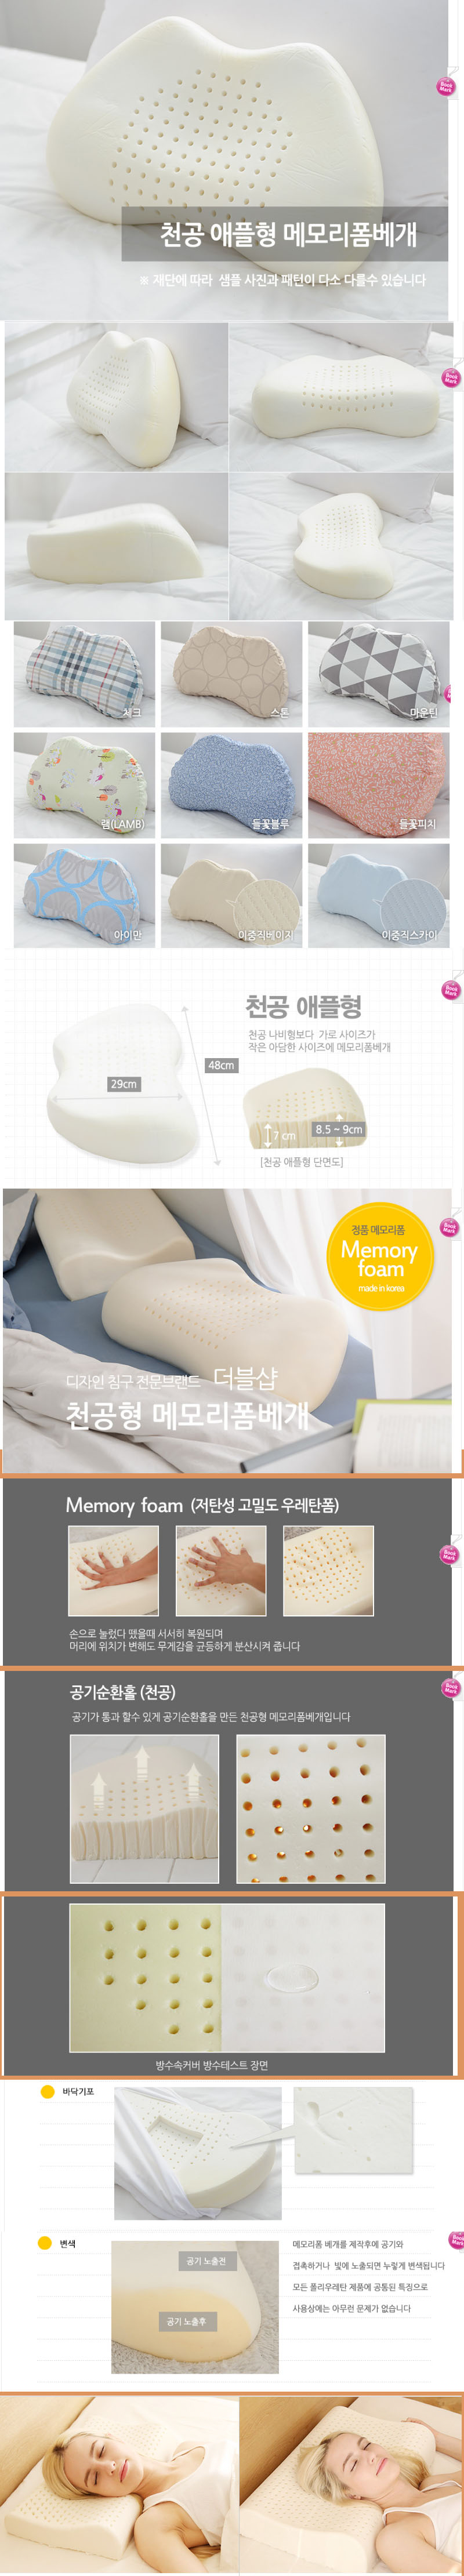 memory-foam-double-sharp.jpg